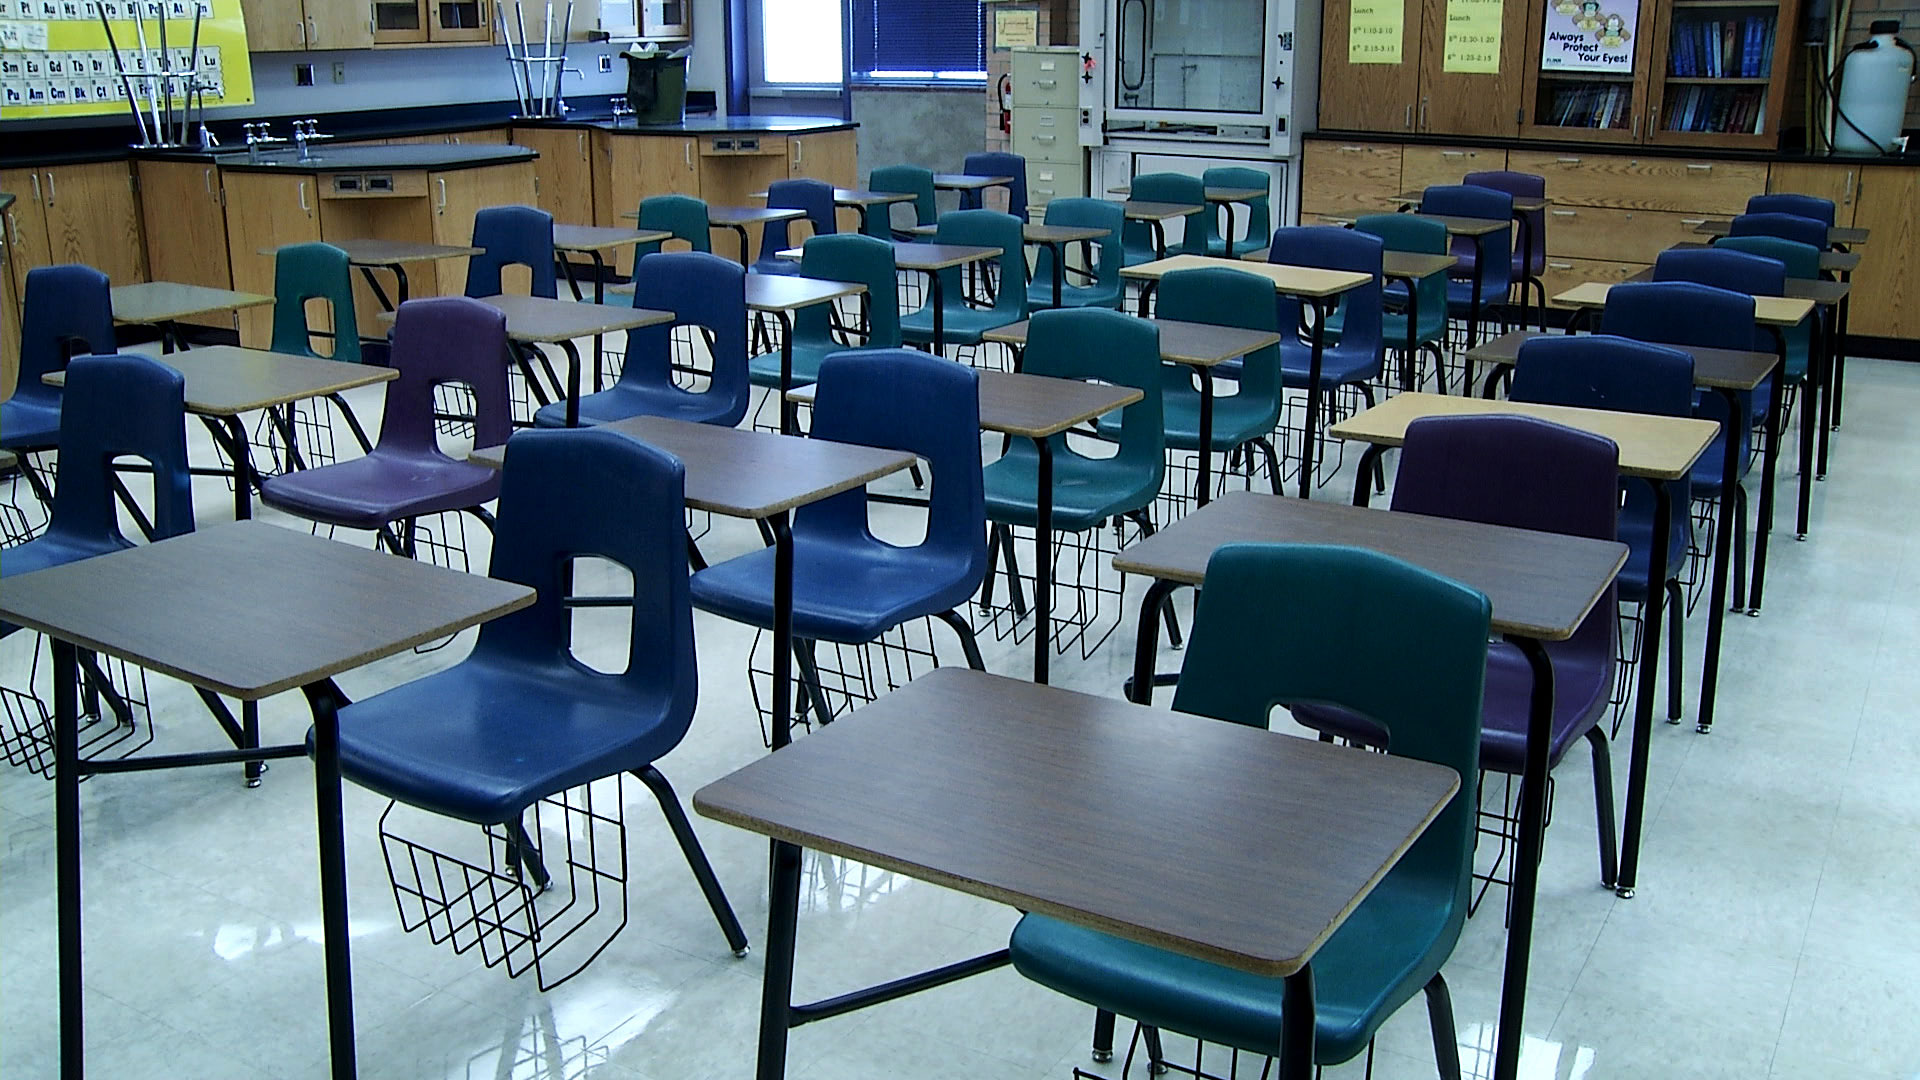 File image of an empty classroom at Sabino High School in Tucson.